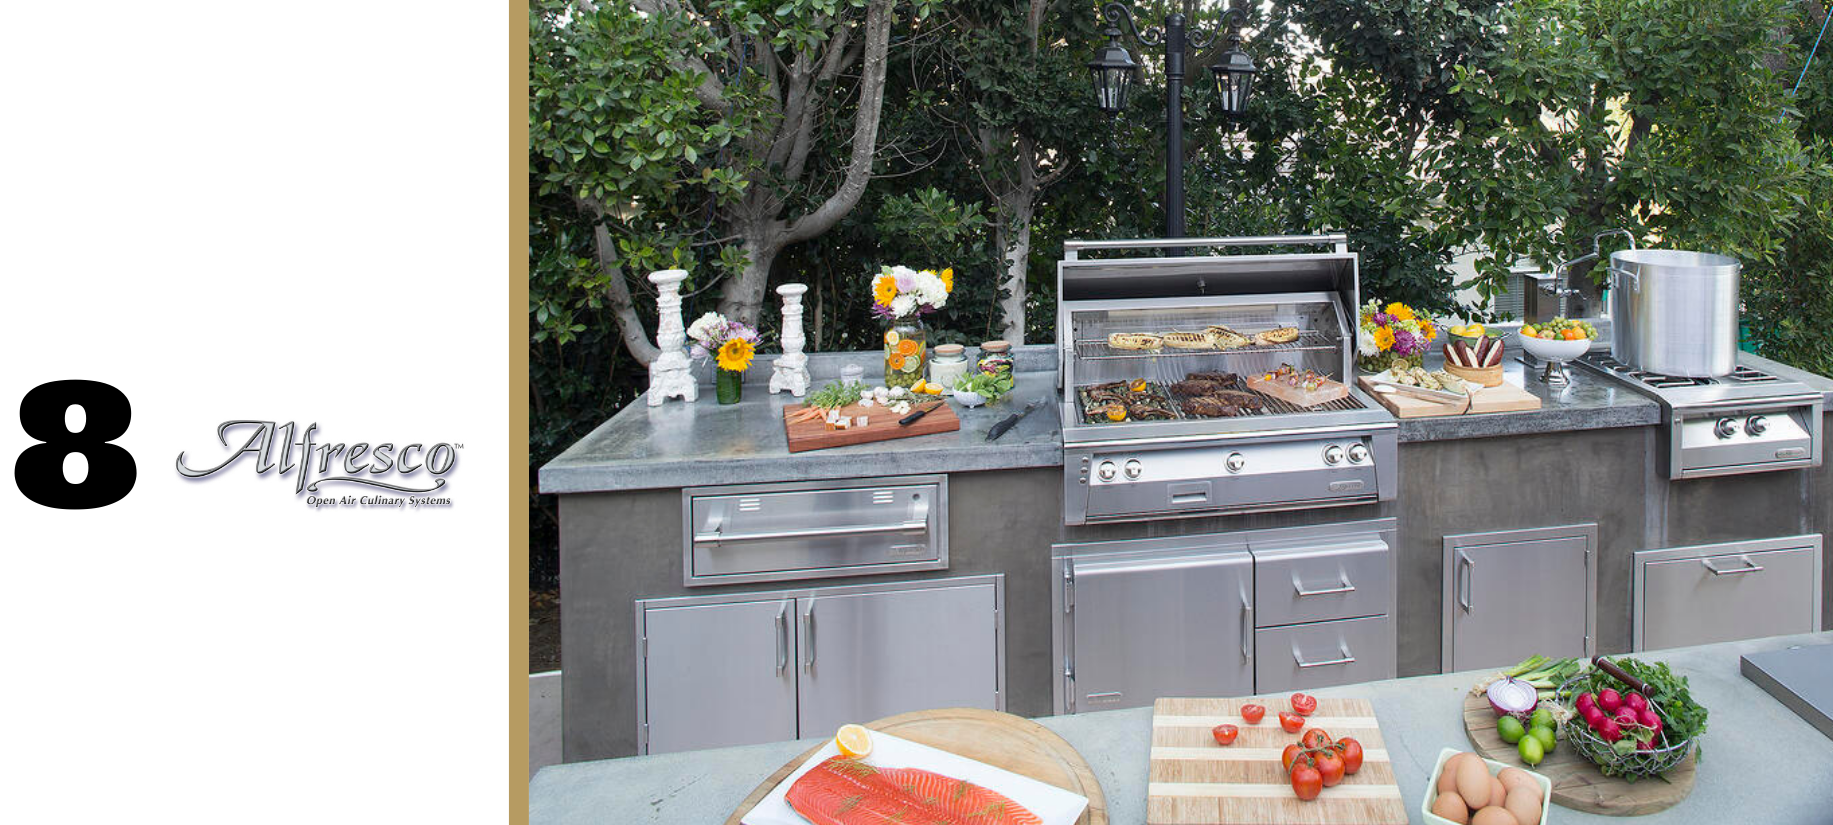 Alfresco complete line of residential outdoor kitchen appliances